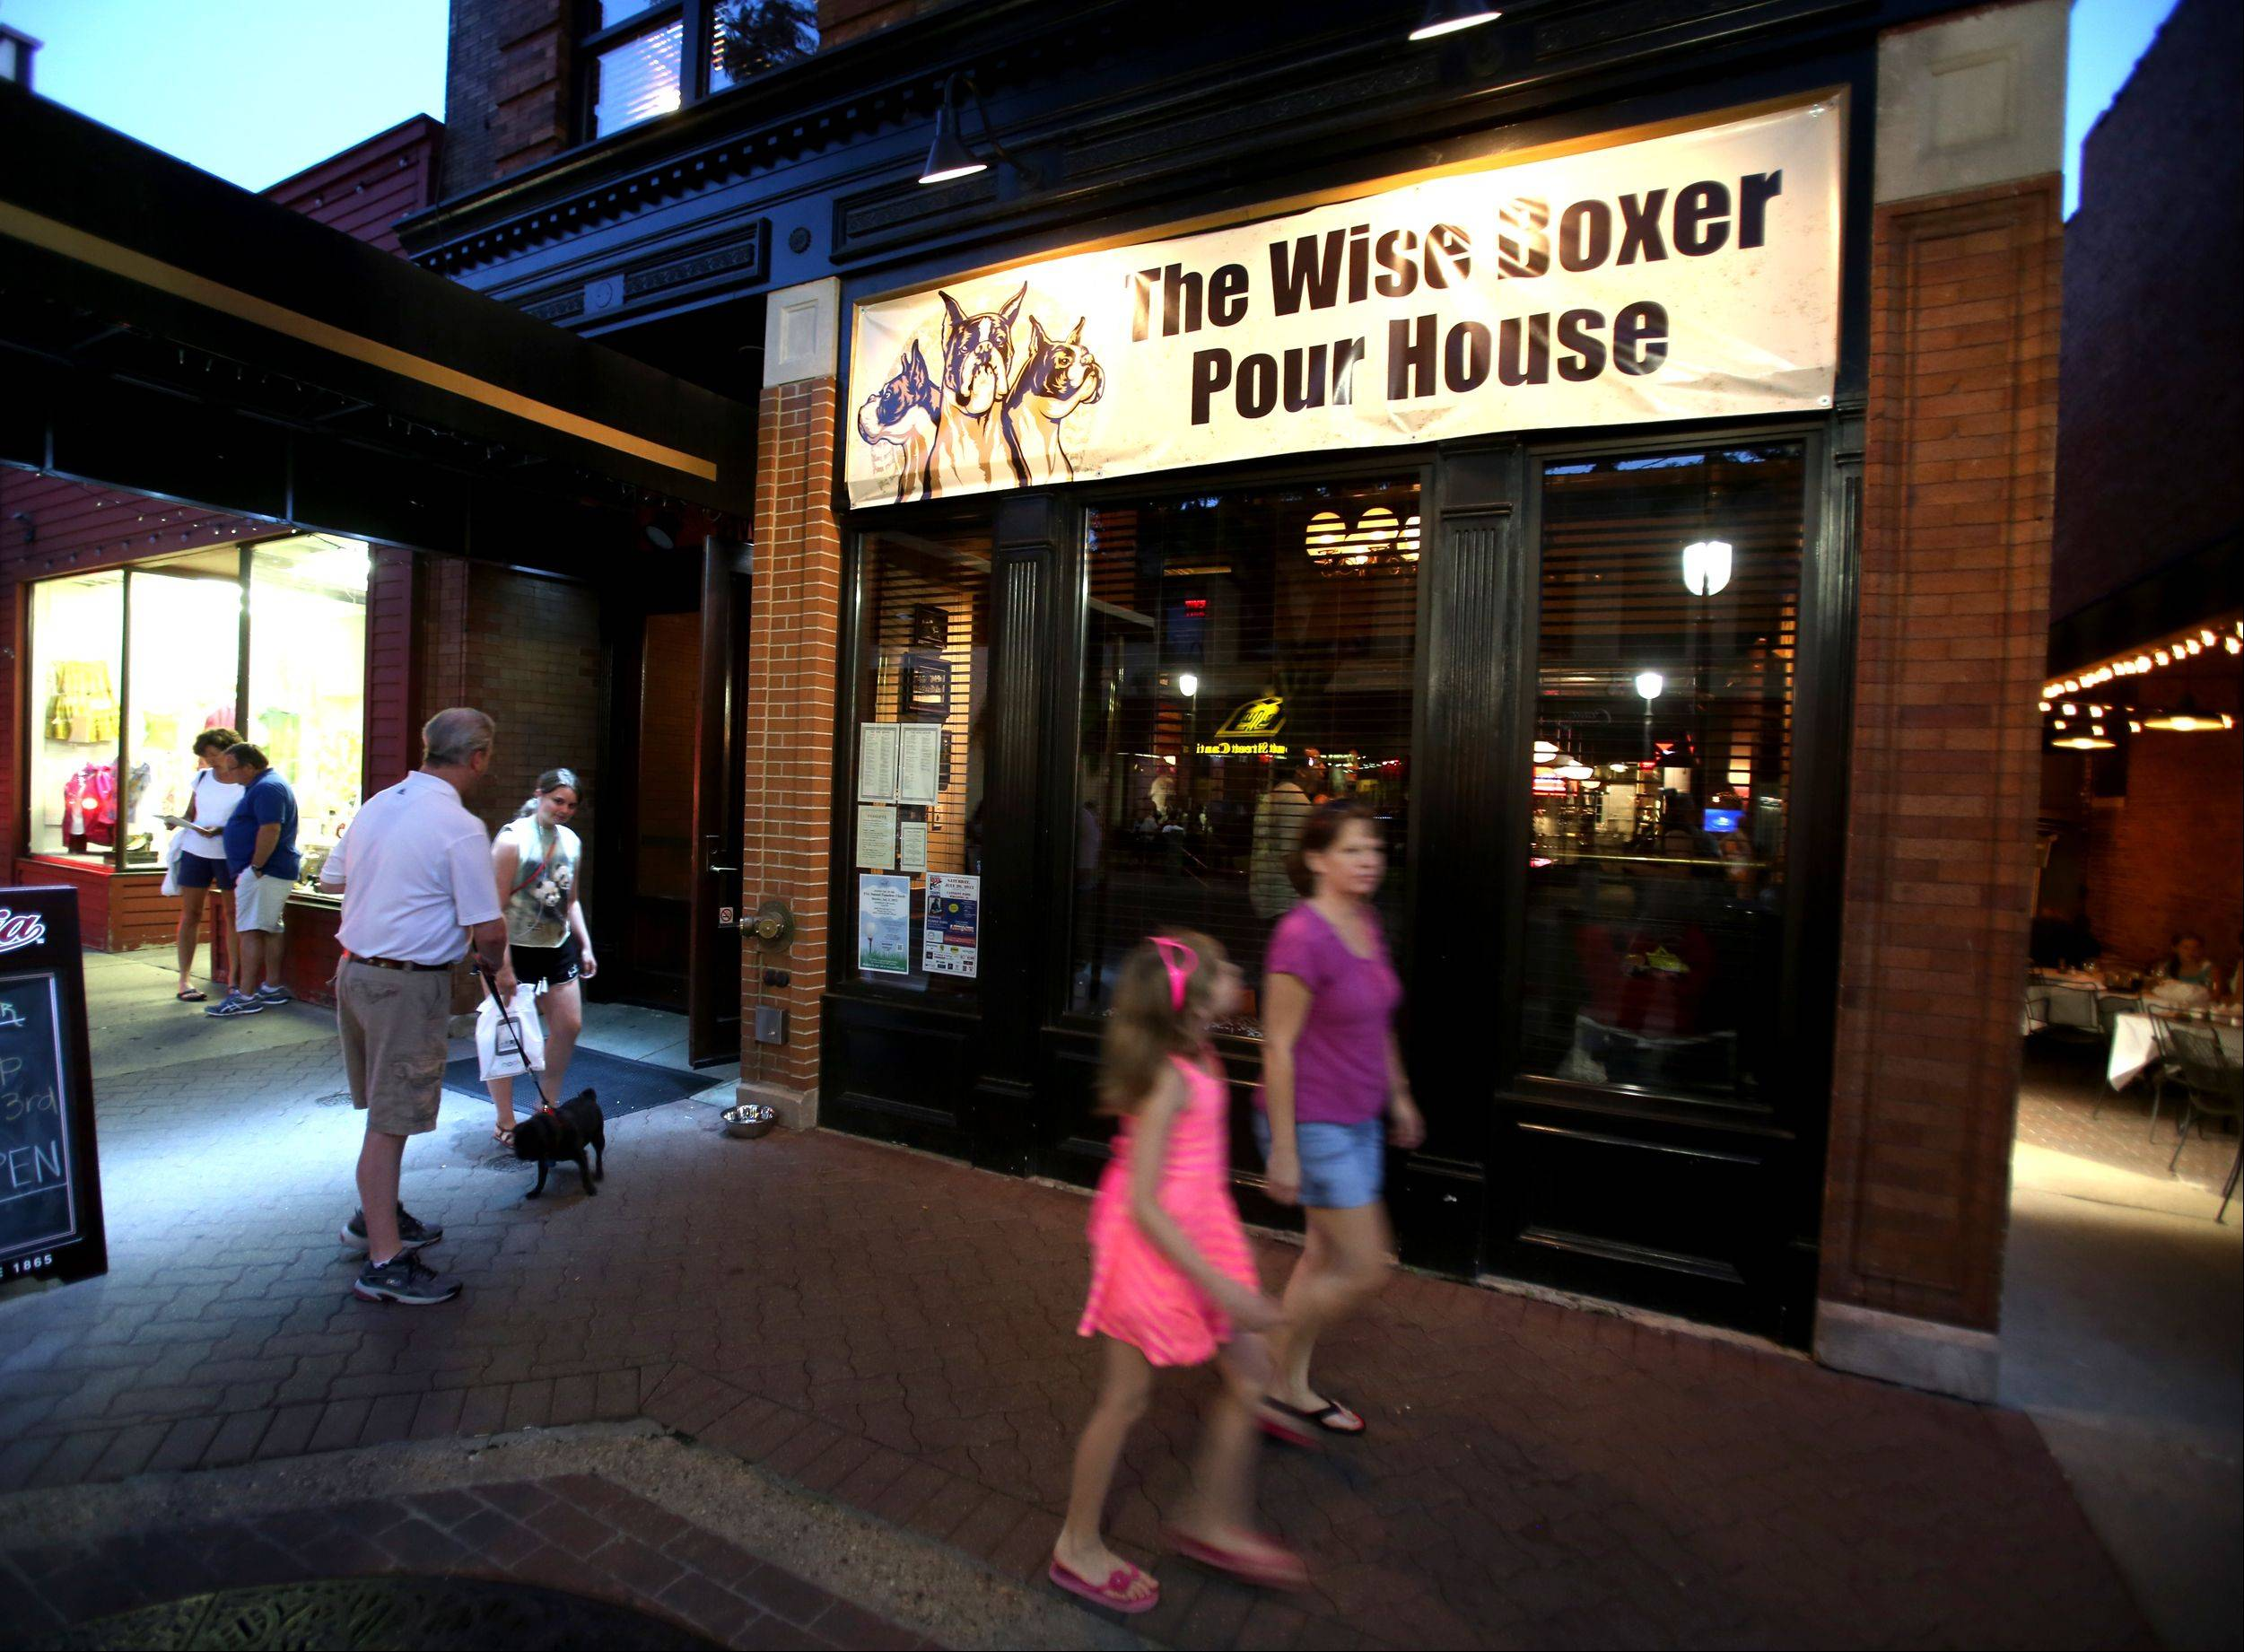 The Wise Boxer Pour House took over the old location of BlackFinn American Saloon in Naperville.